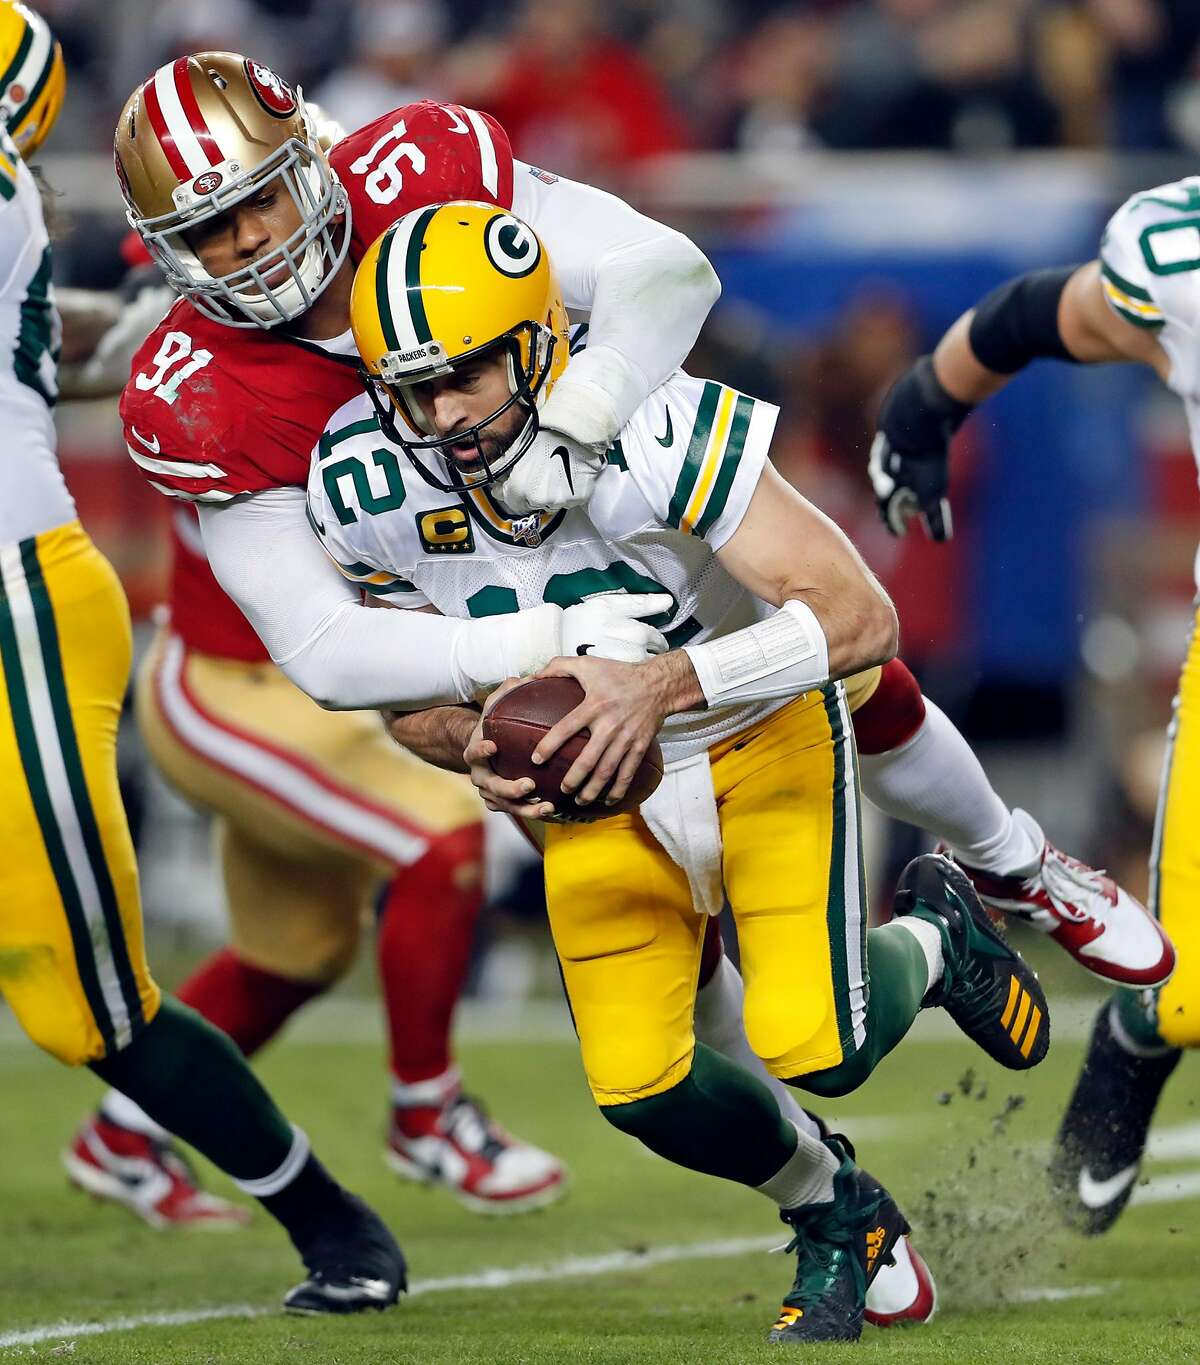 San Francisco 49ers' Arik Armstead sacks Green Bay Packers' Aaron Rodgers in 2nd quarter during NFL game at Levi's Stadium in Santa Clara, Calif., on Sunday, November 24, 2019.